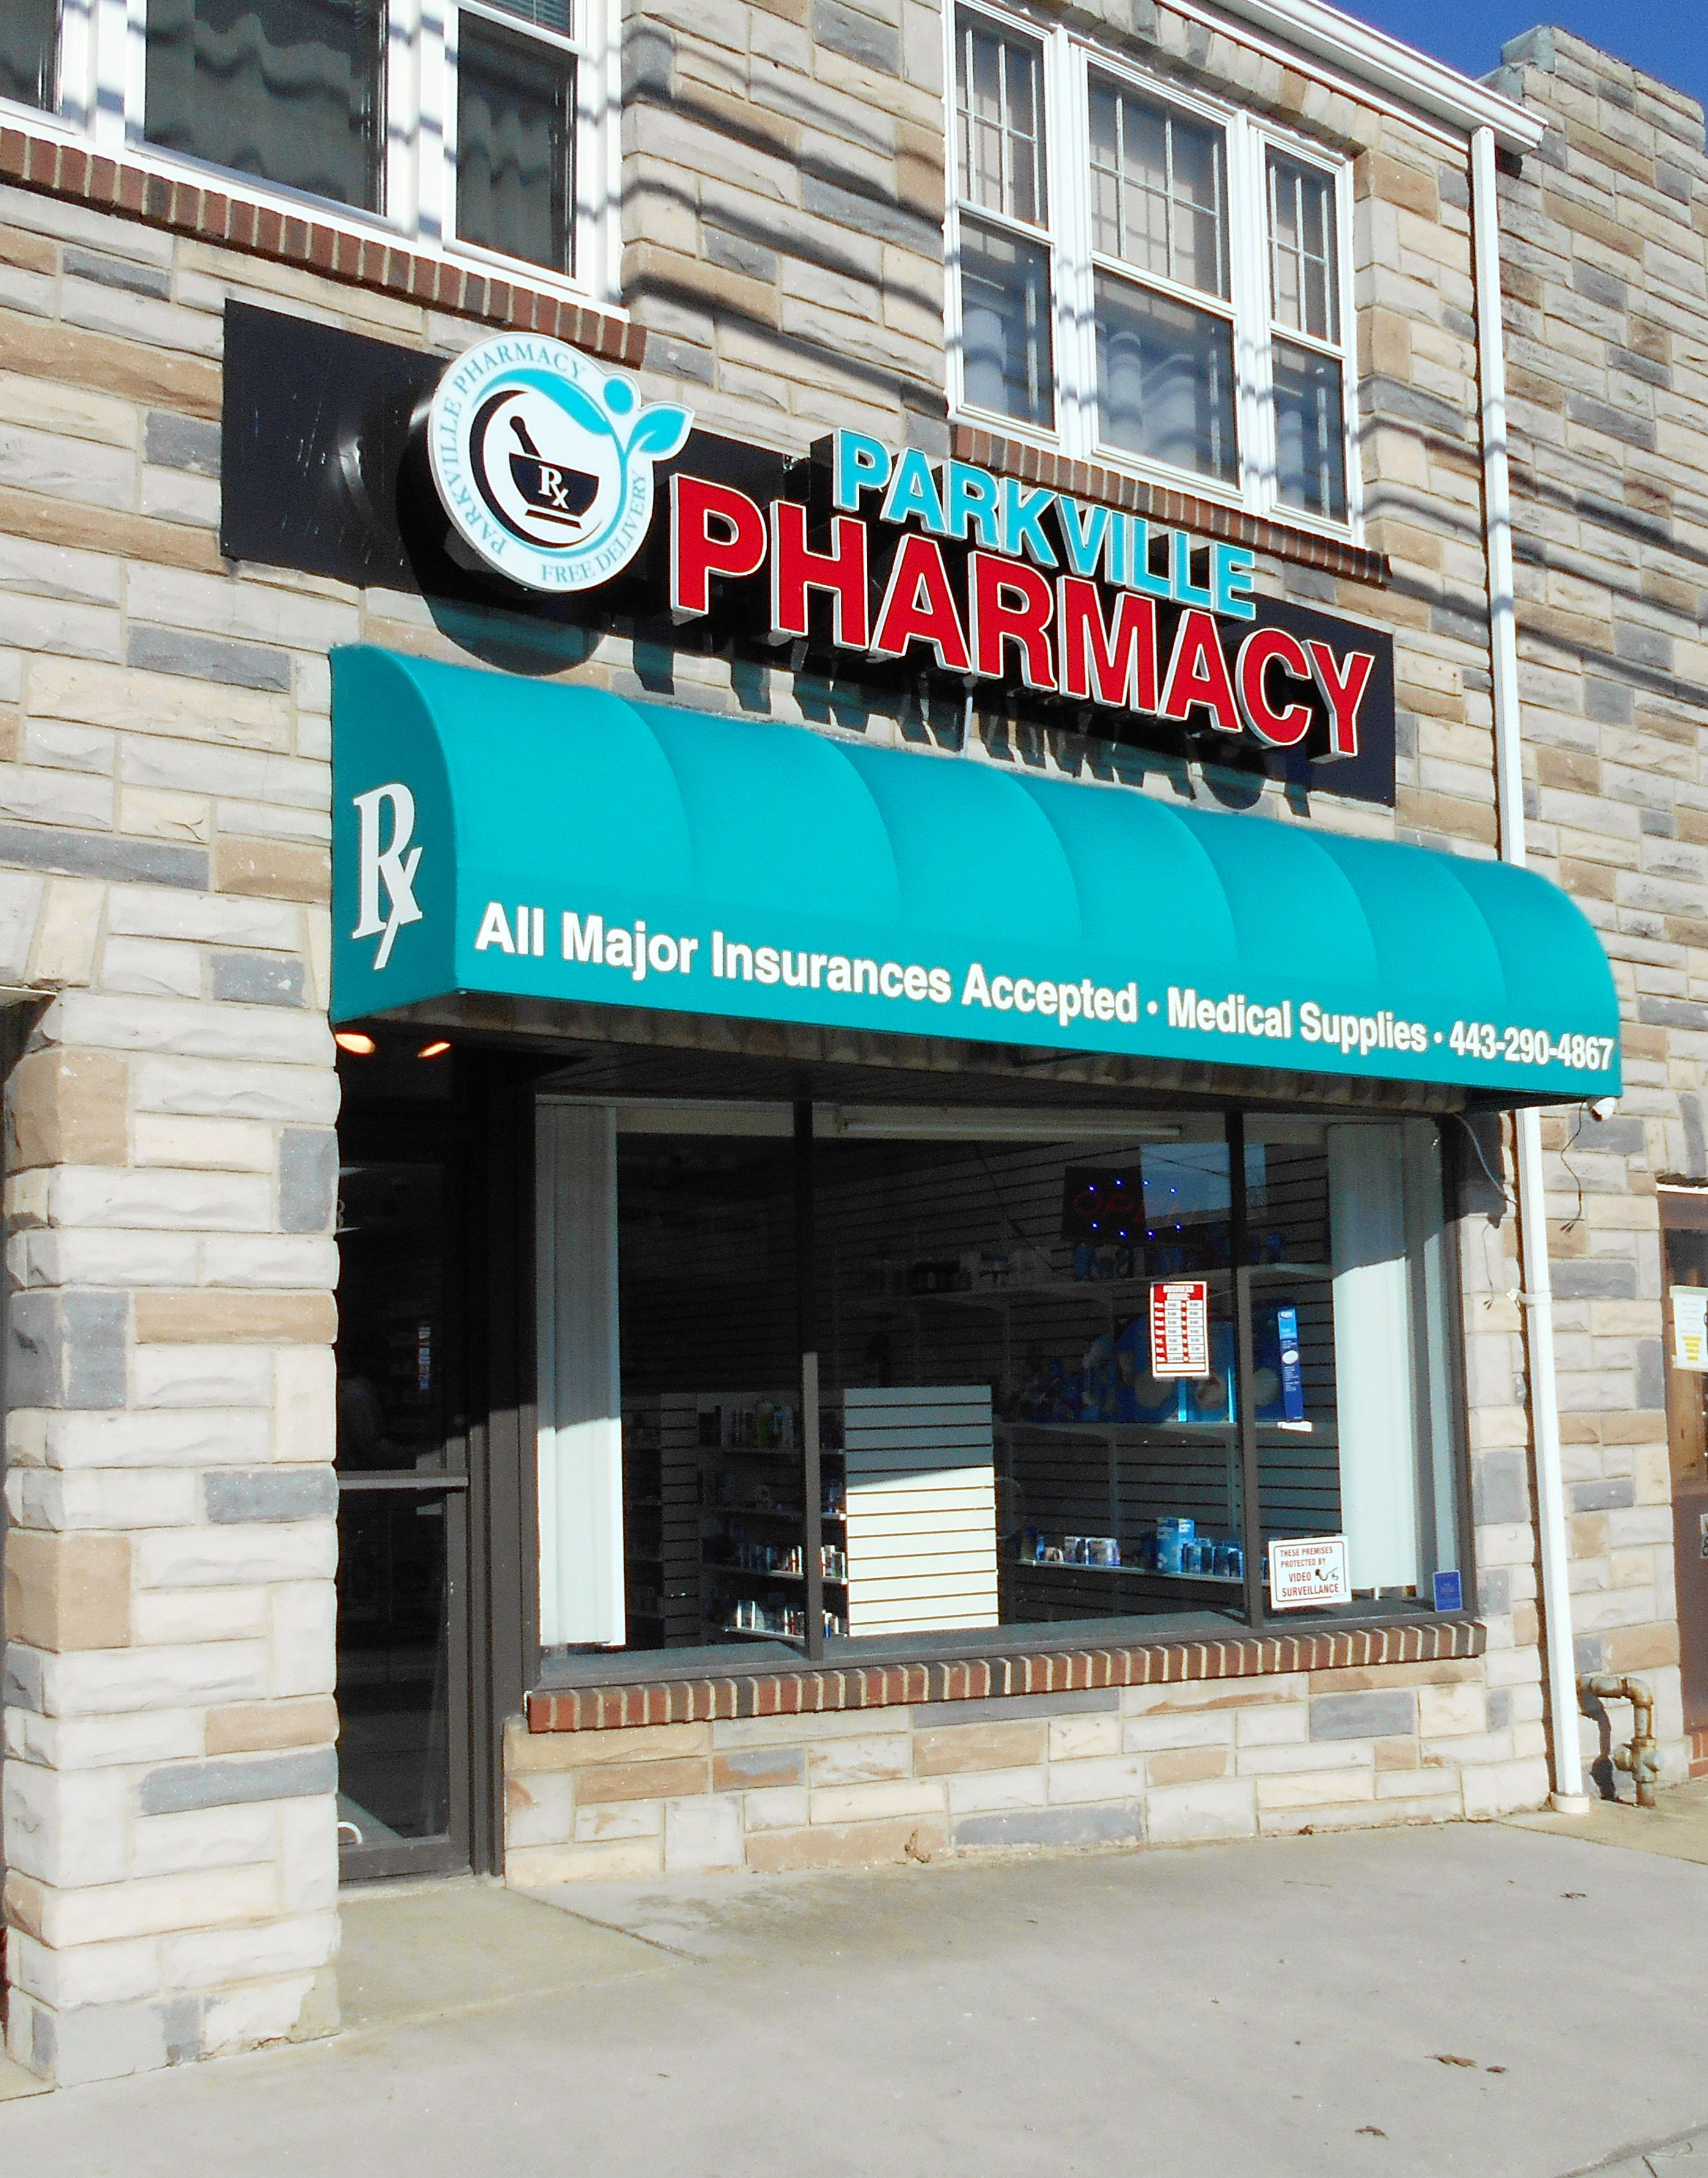 Storefront Awning Adds Exposure For Small Pharmacy Awning Pharmacy Decor Awning Over Door